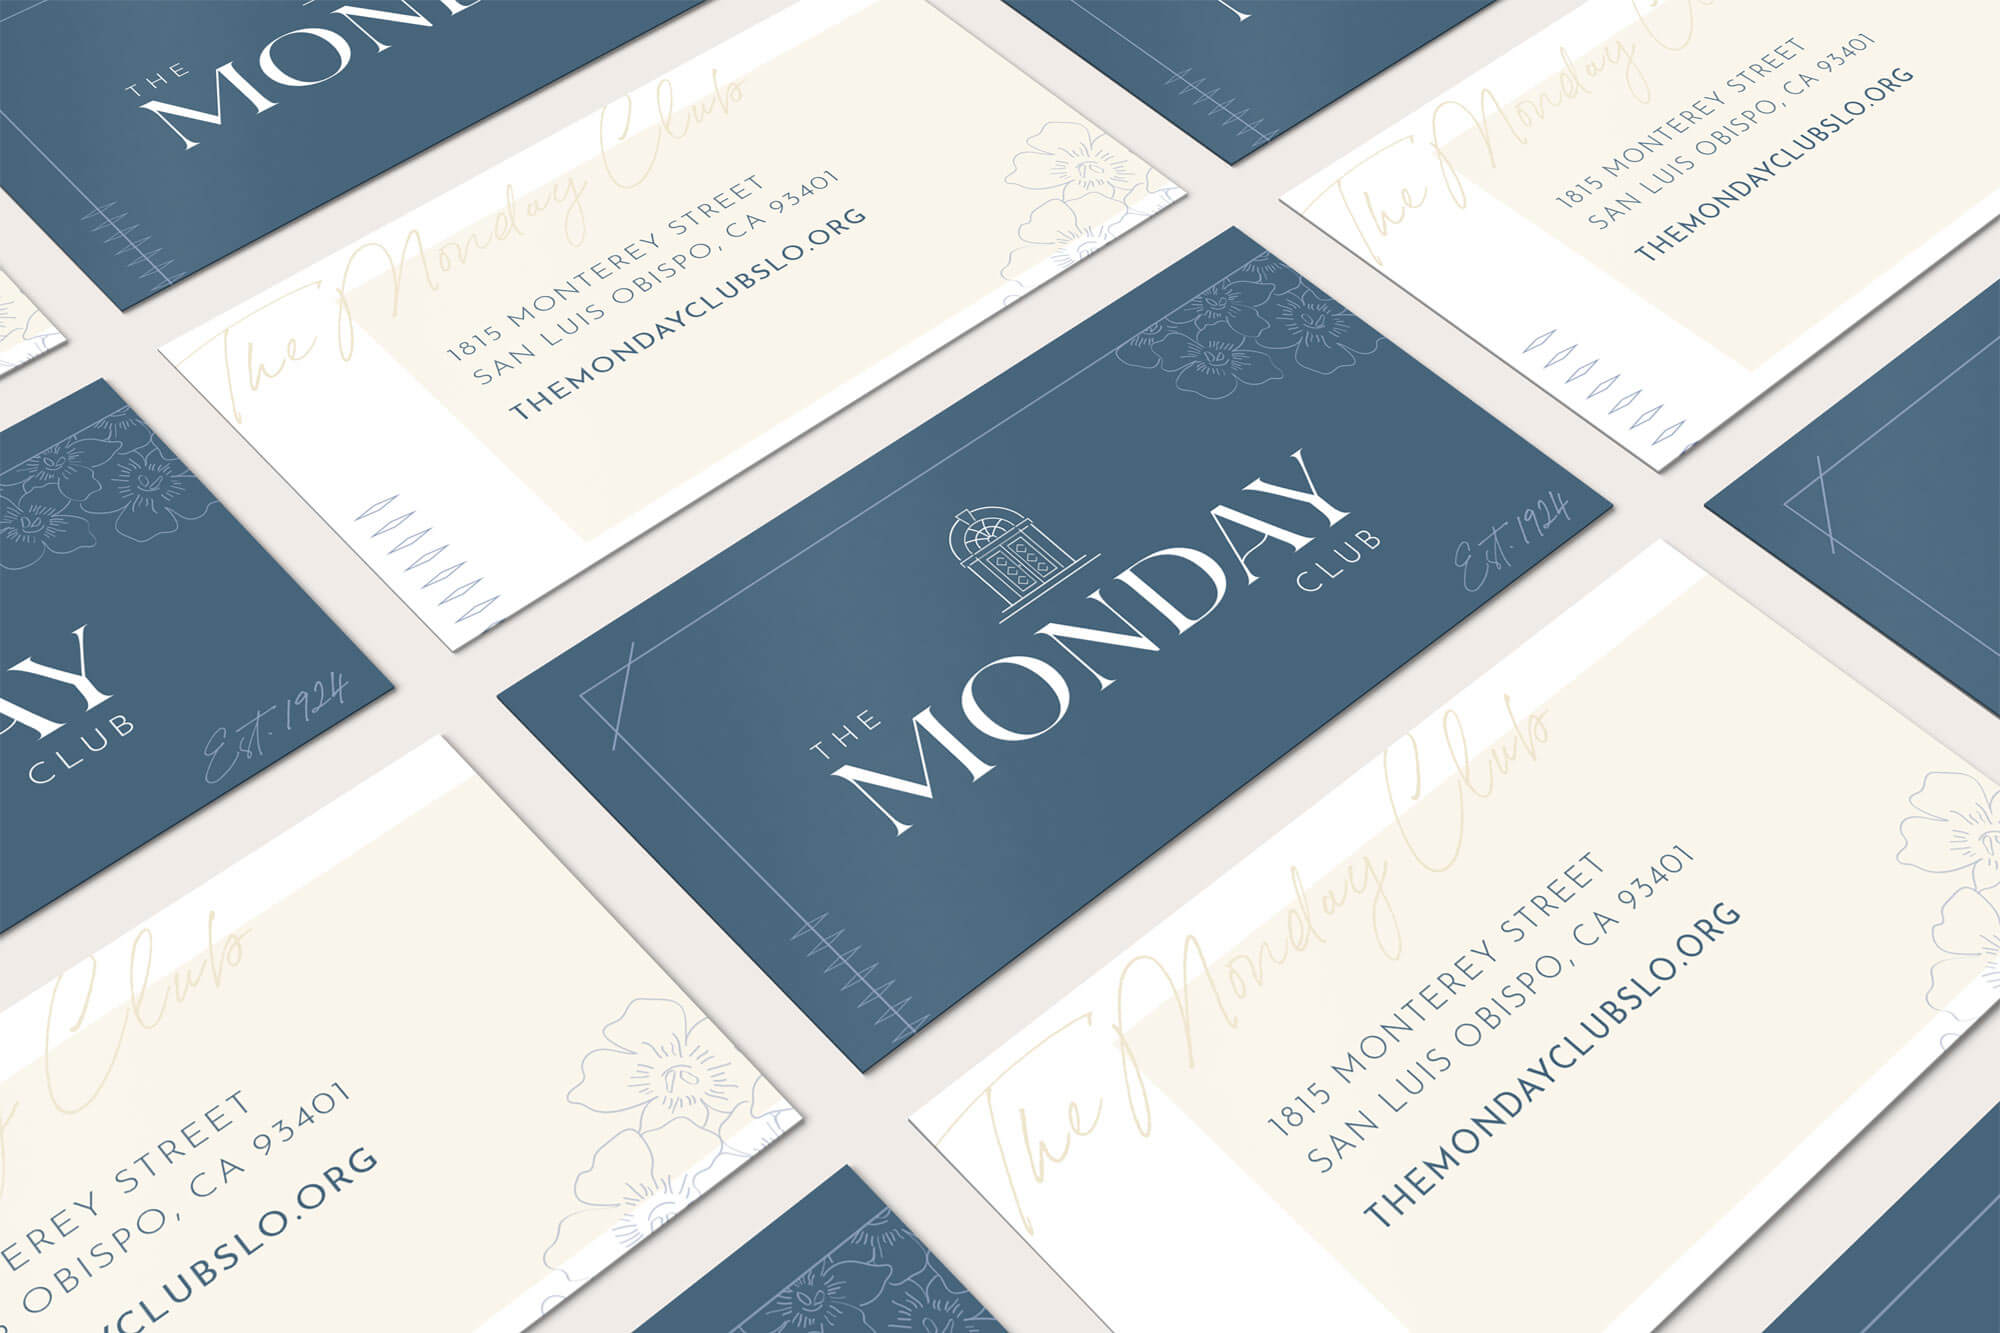 The Monday Club business cards flat lay